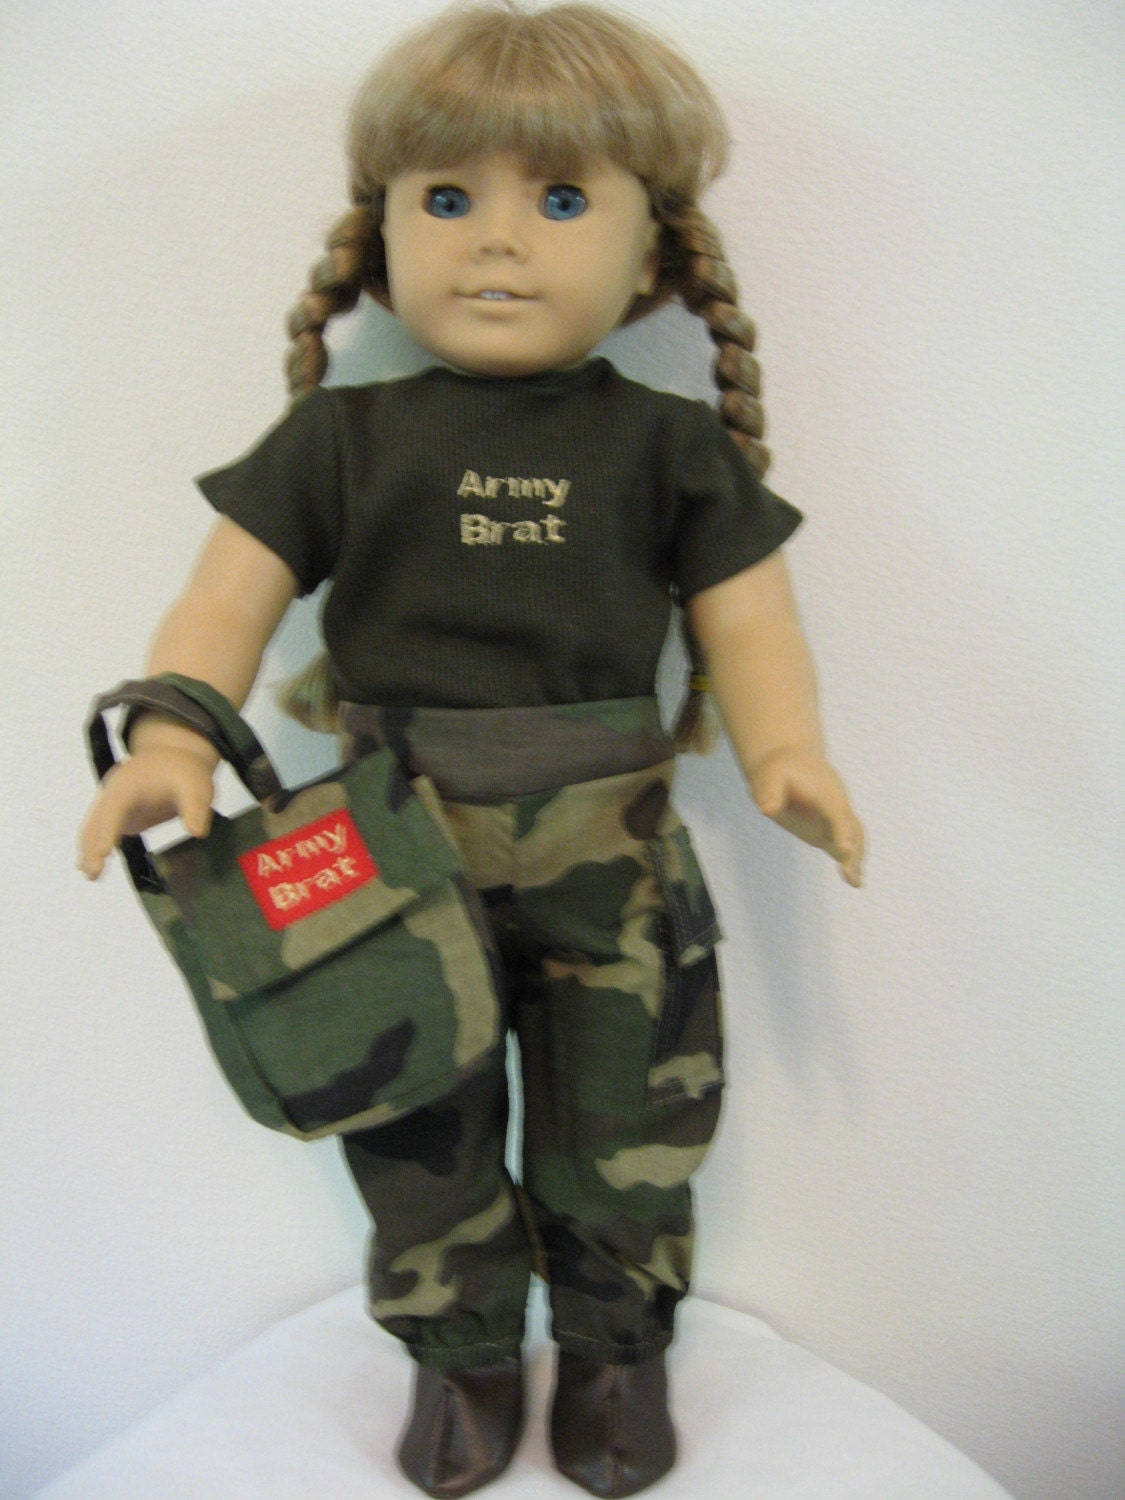 Army Brat Camaflauge Outfit For American Girl Dolls